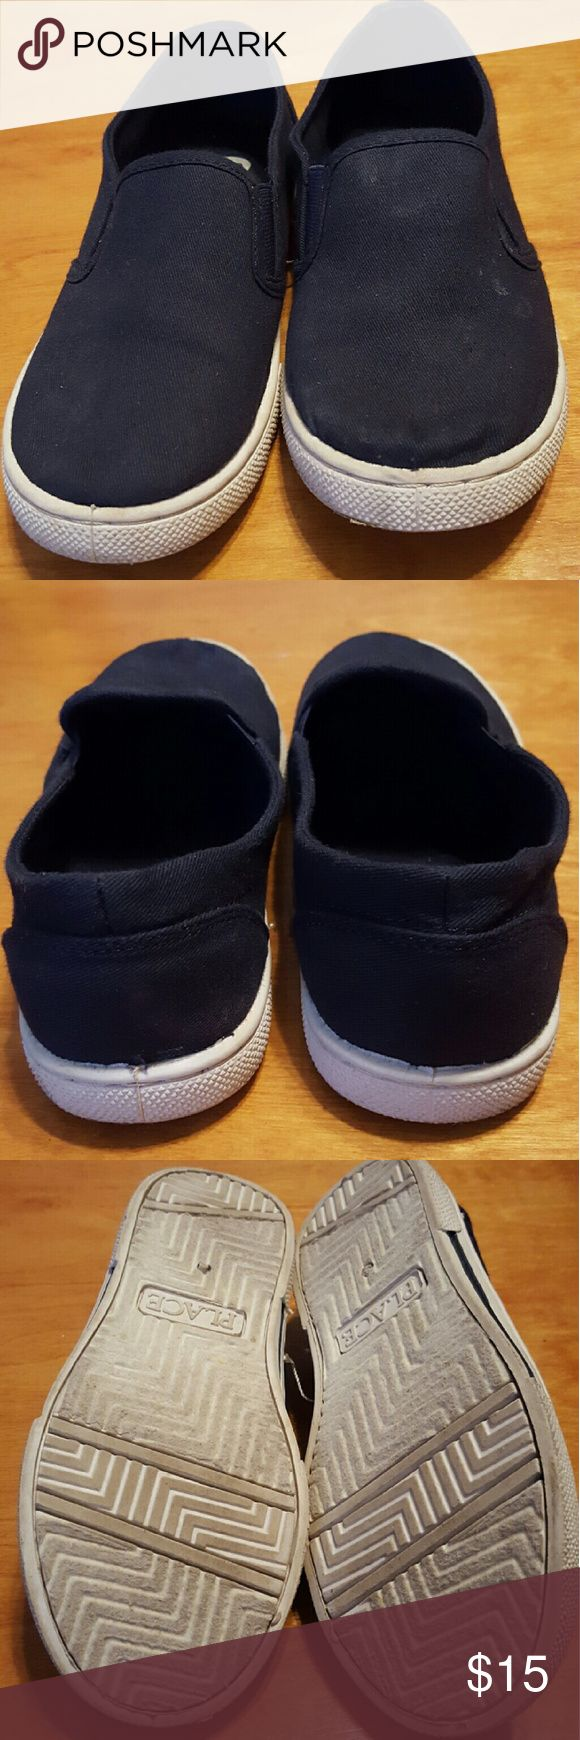 Children's Place little boys loafers size 2 Navy blue boys shoes. Only worn once for a music program at school. Very cute. Children's Place Shoes Dress Shoes